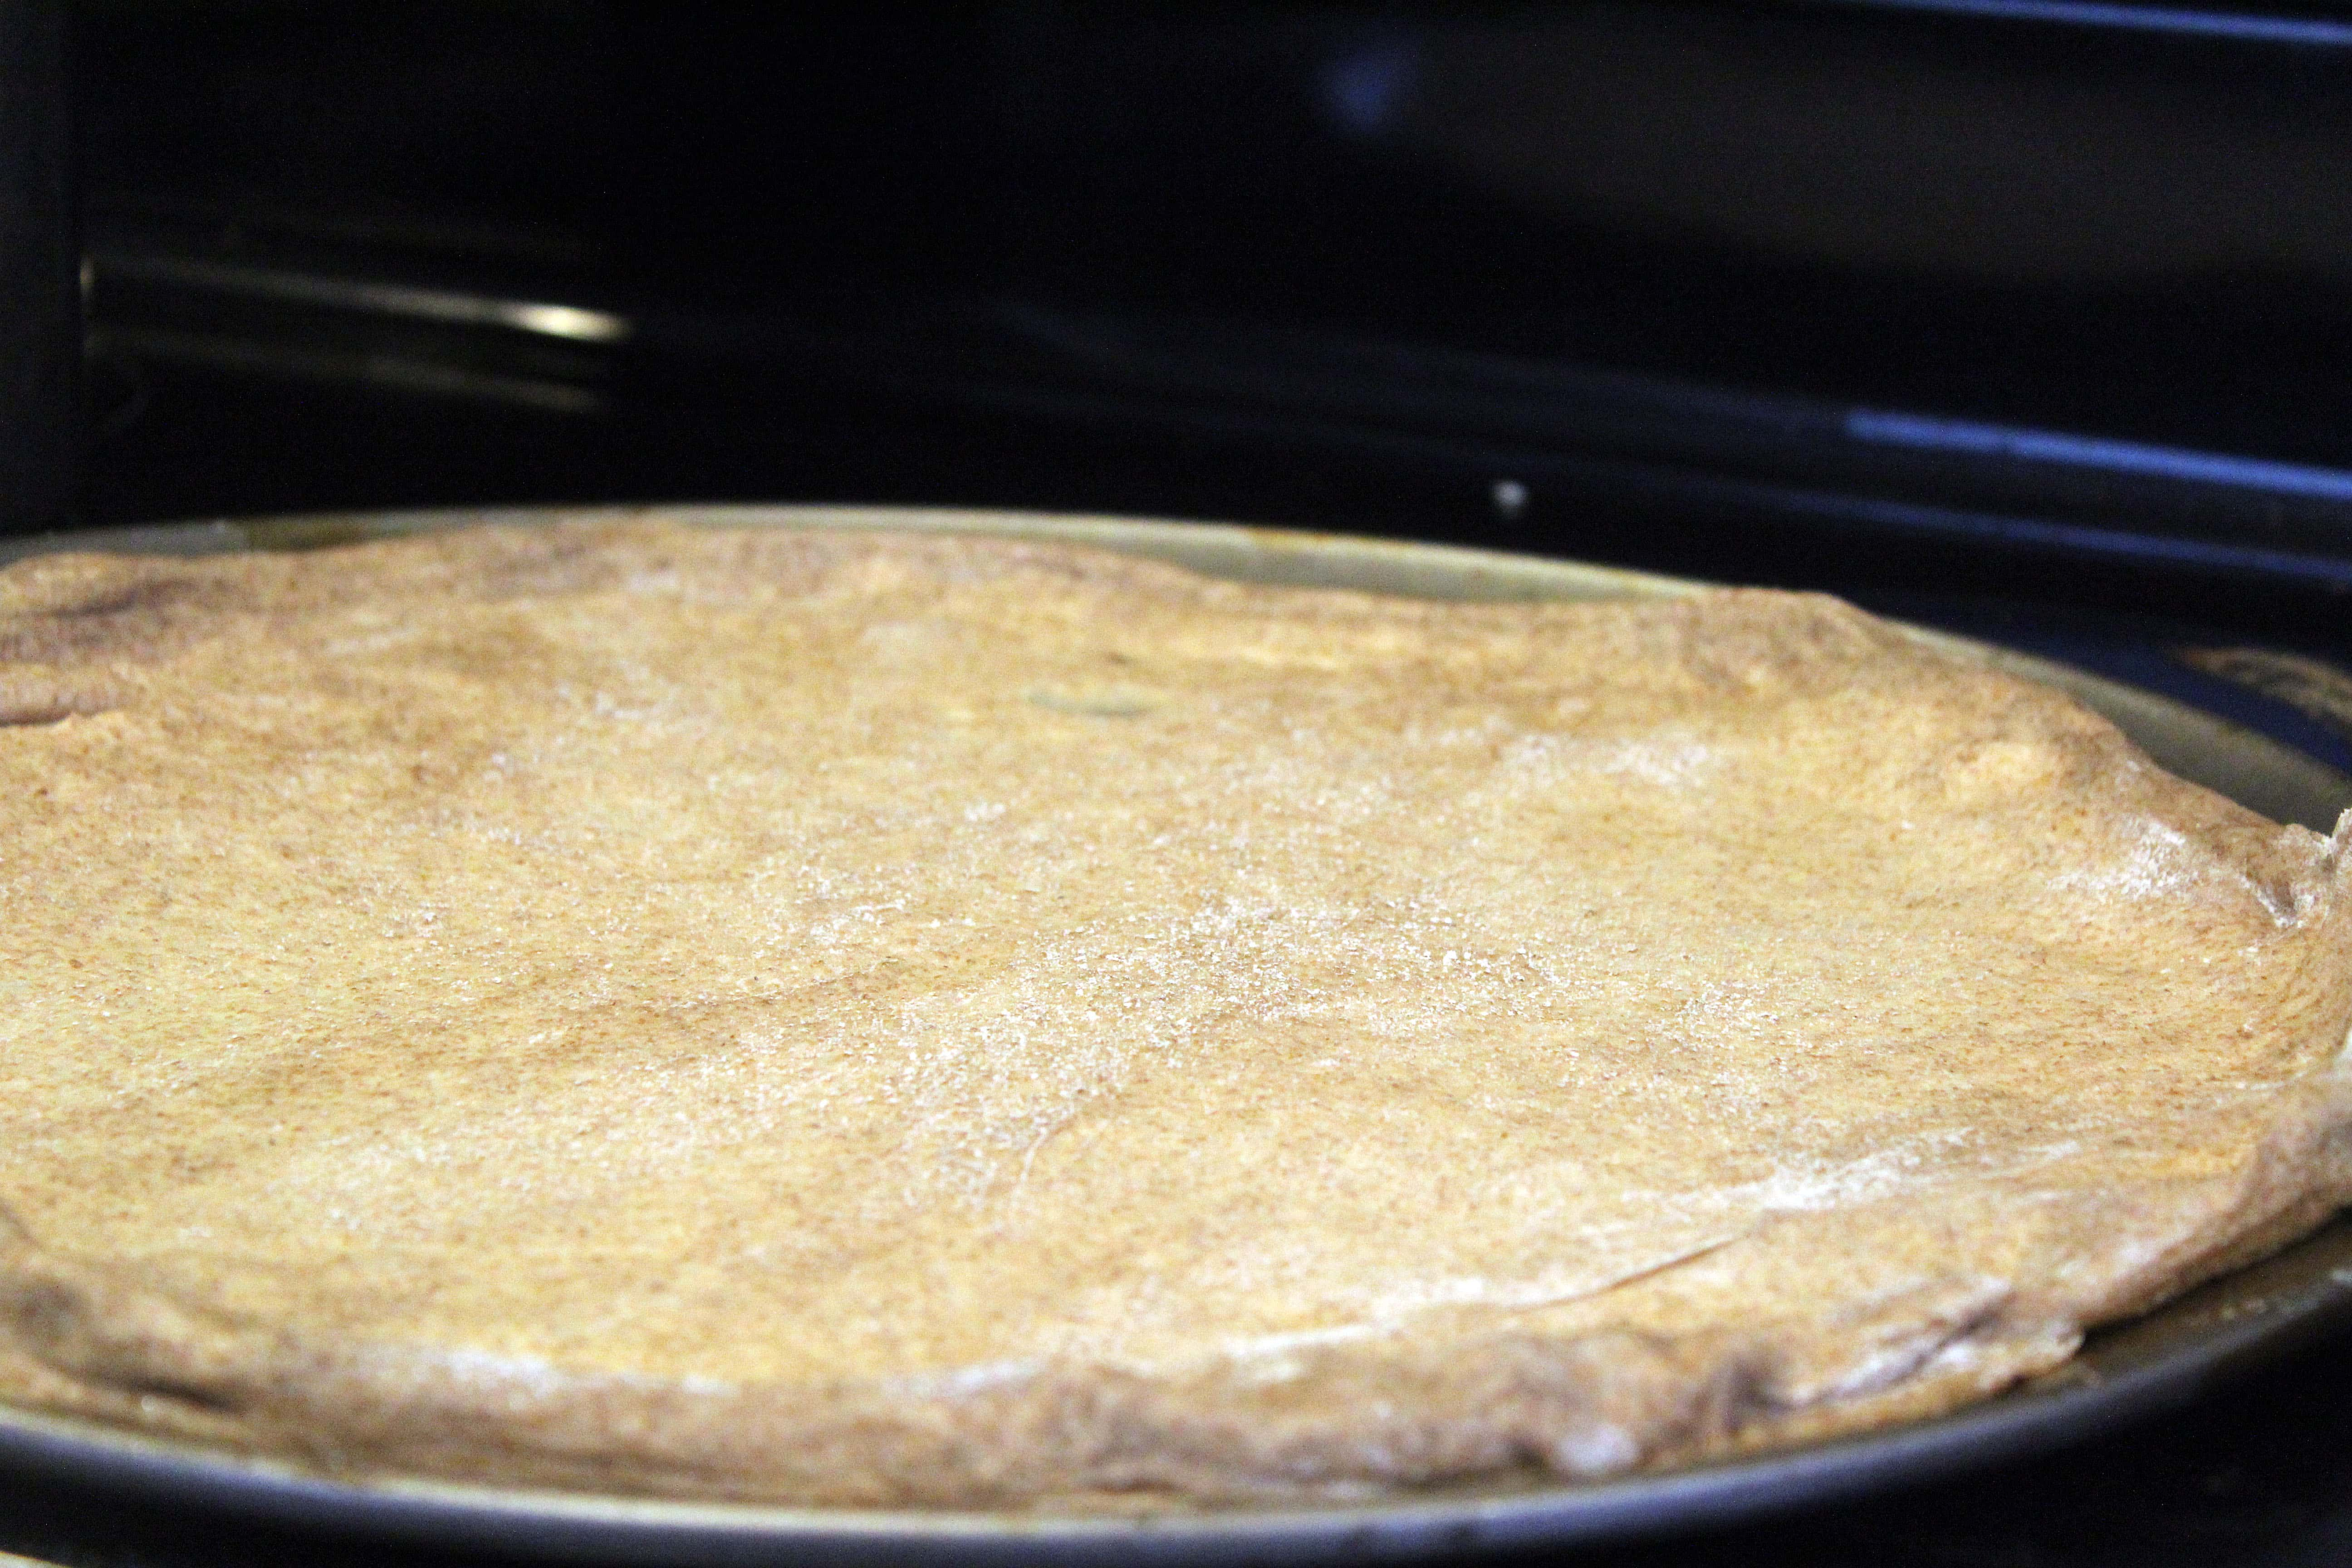 Spread crust until stretched completely